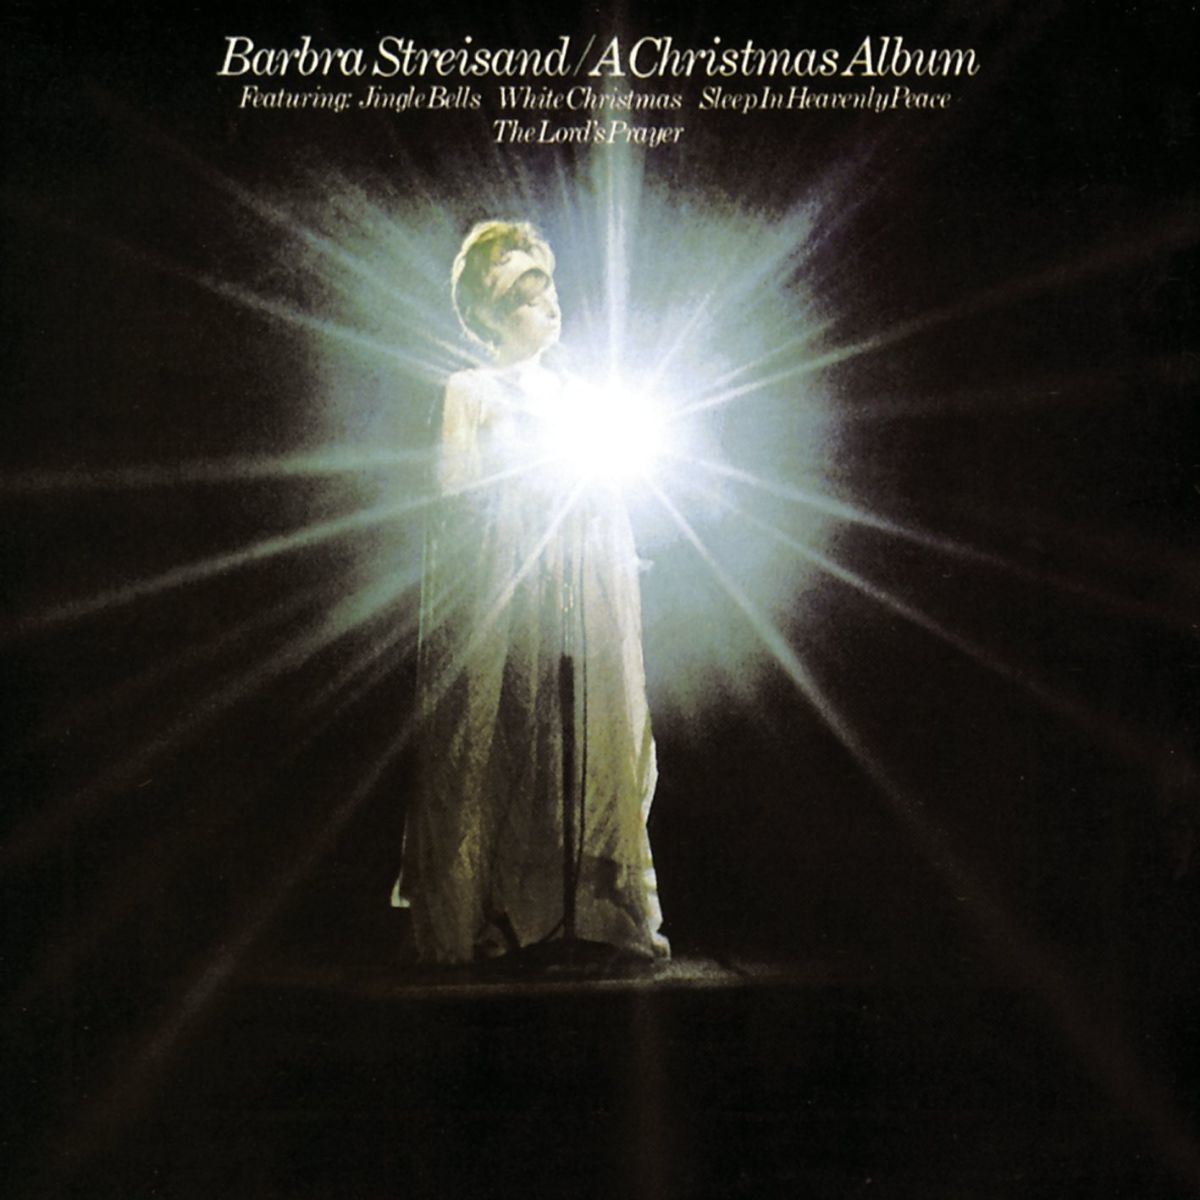 Cd A Christmas Album- Barbra Streisand Cover